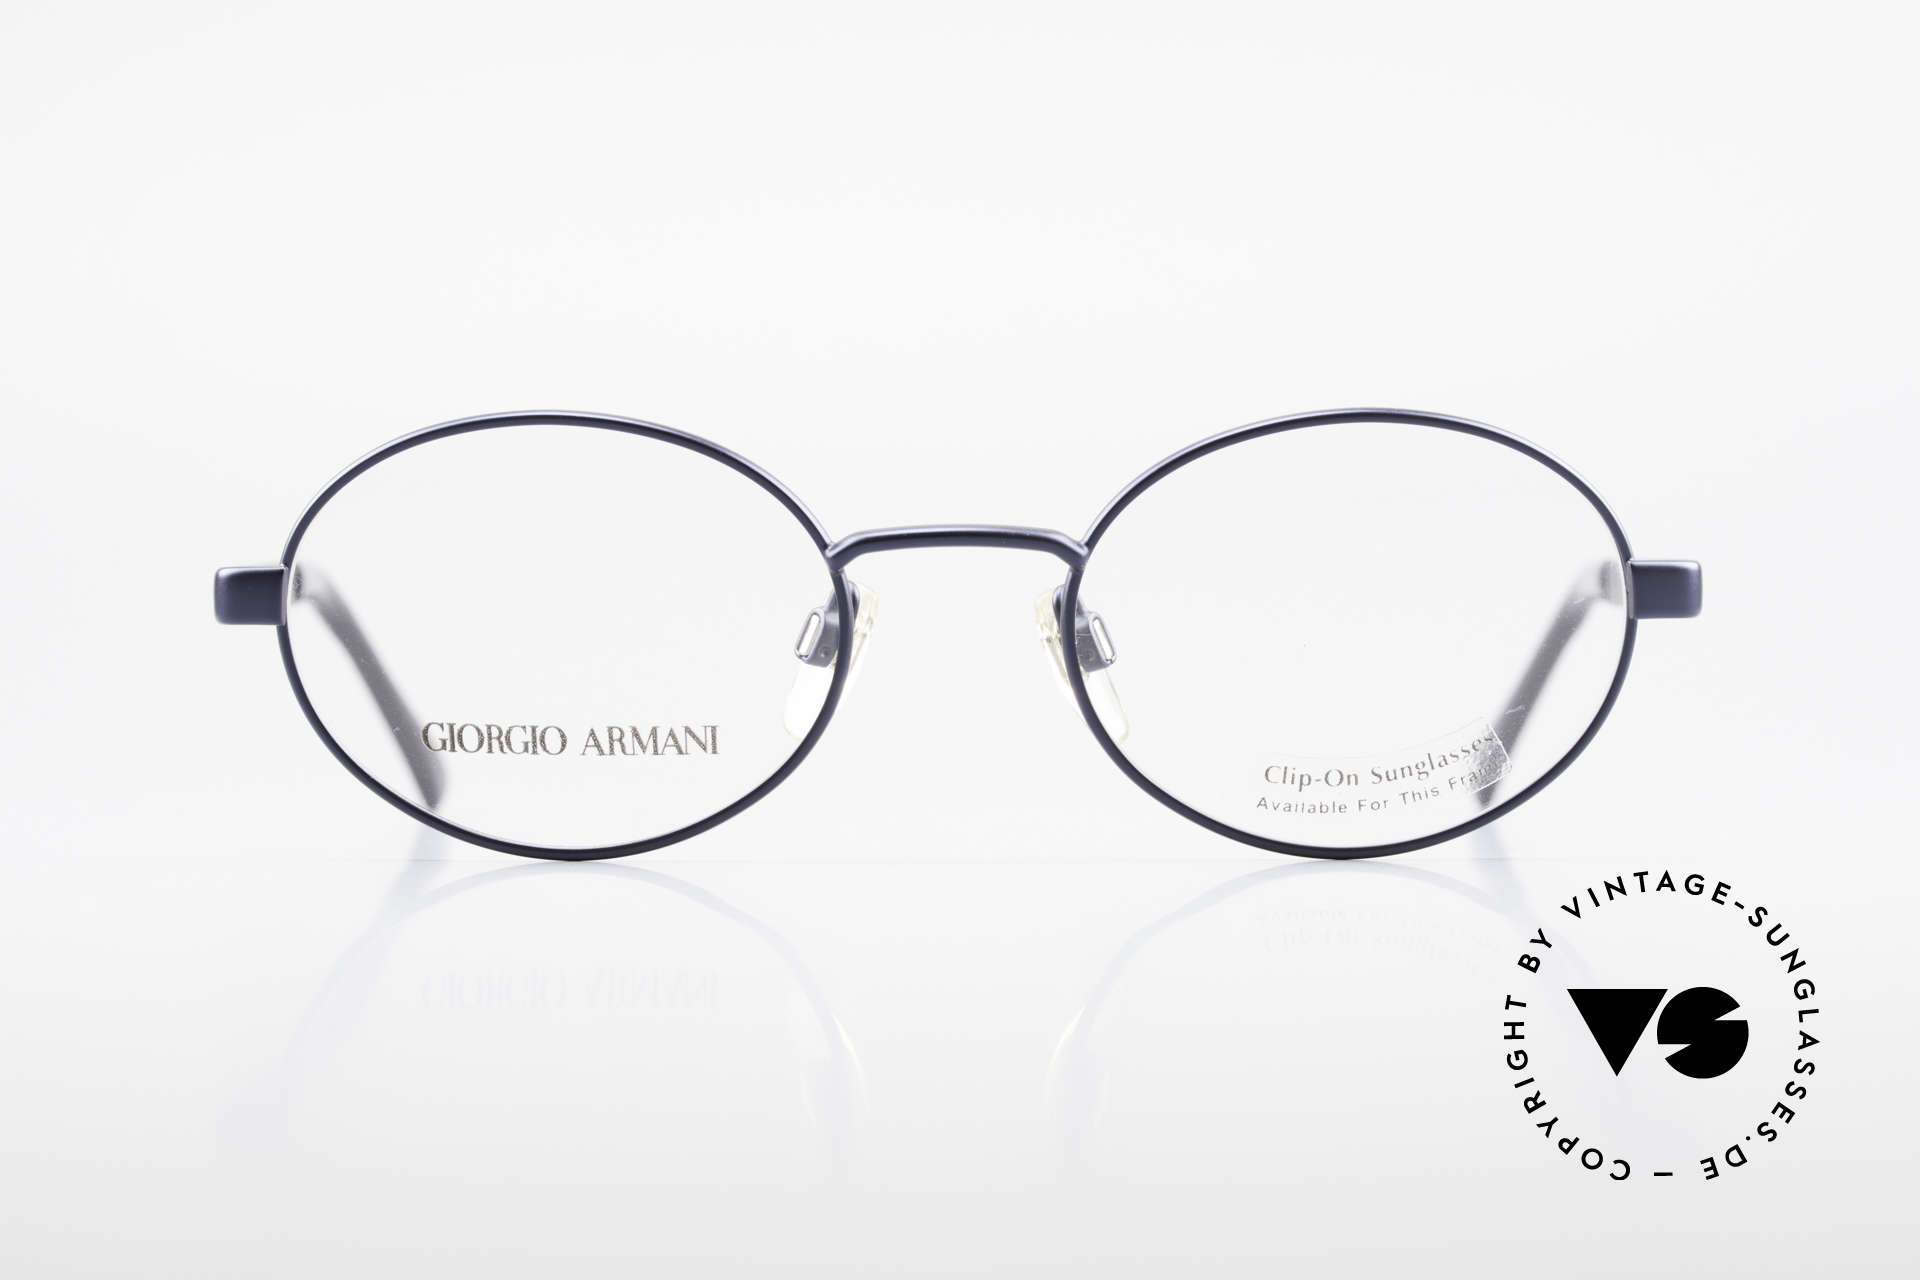 Giorgio Armani 257 90's Oval Vintage Eyeglasses, sober, timeless style: suitable for many occasions, Made for Men and Women